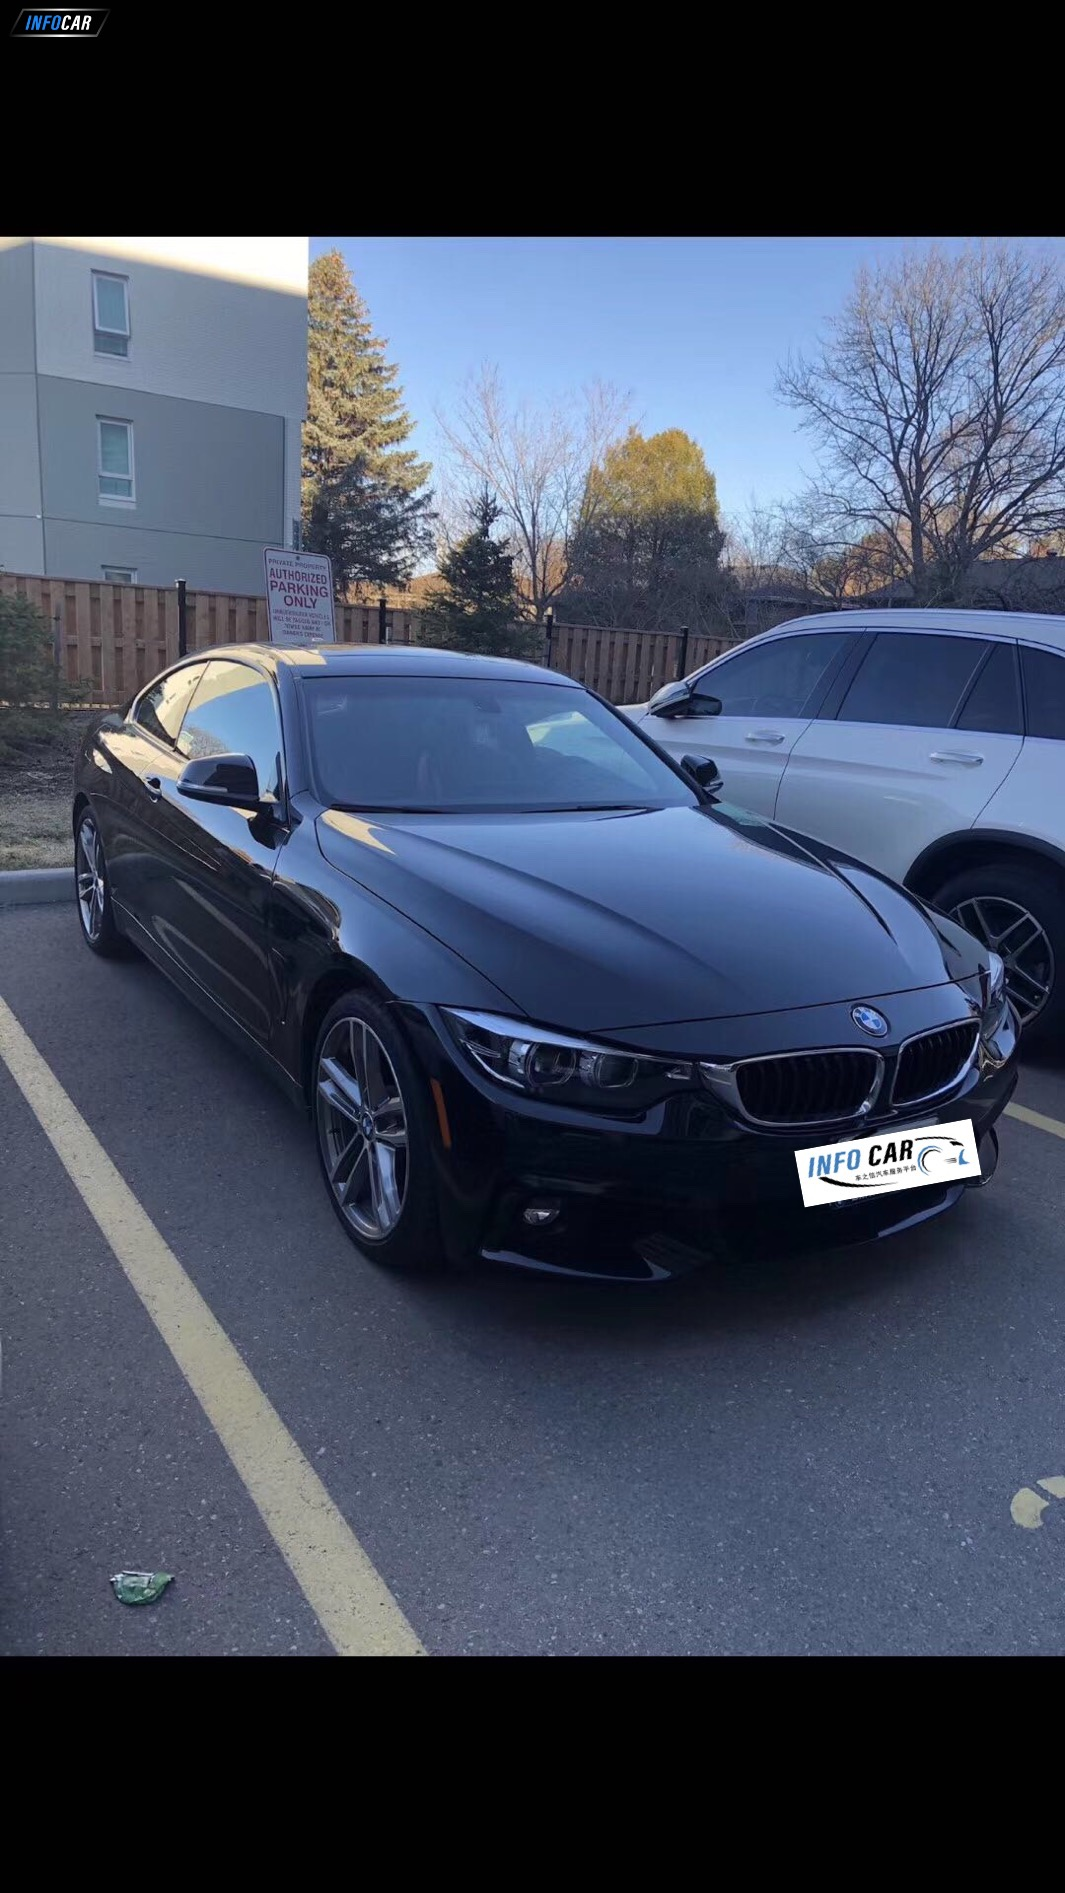 2018 BMW 4-Series Gran Coupe 440 - INFOCAR - Toronto's Most Comprehensive New and Used Auto Trading Platform